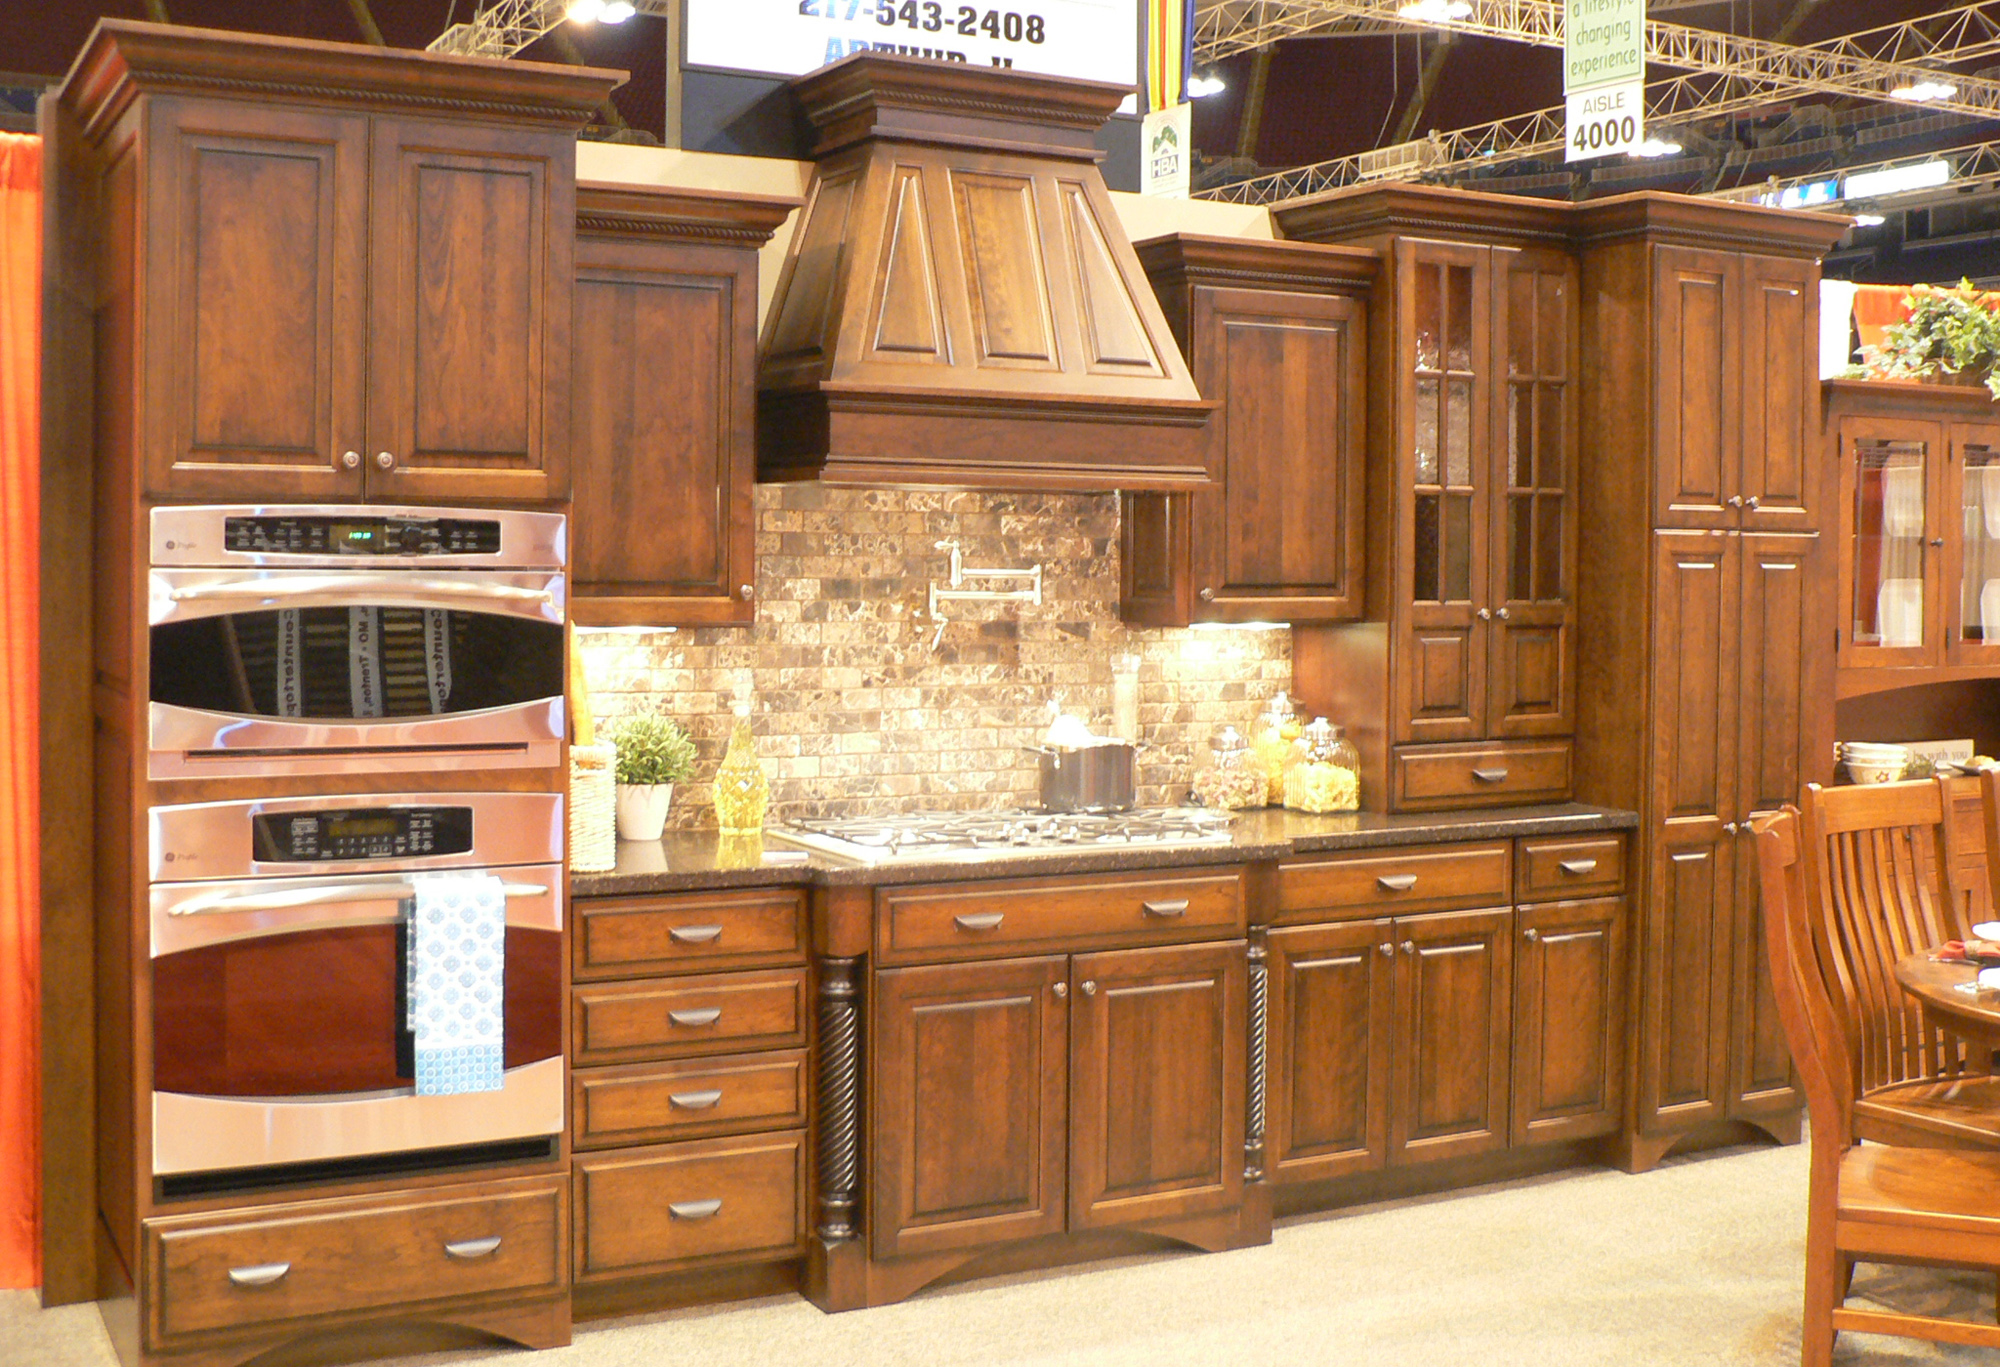 Builders Home And Garden Show Set For 40th Edition San